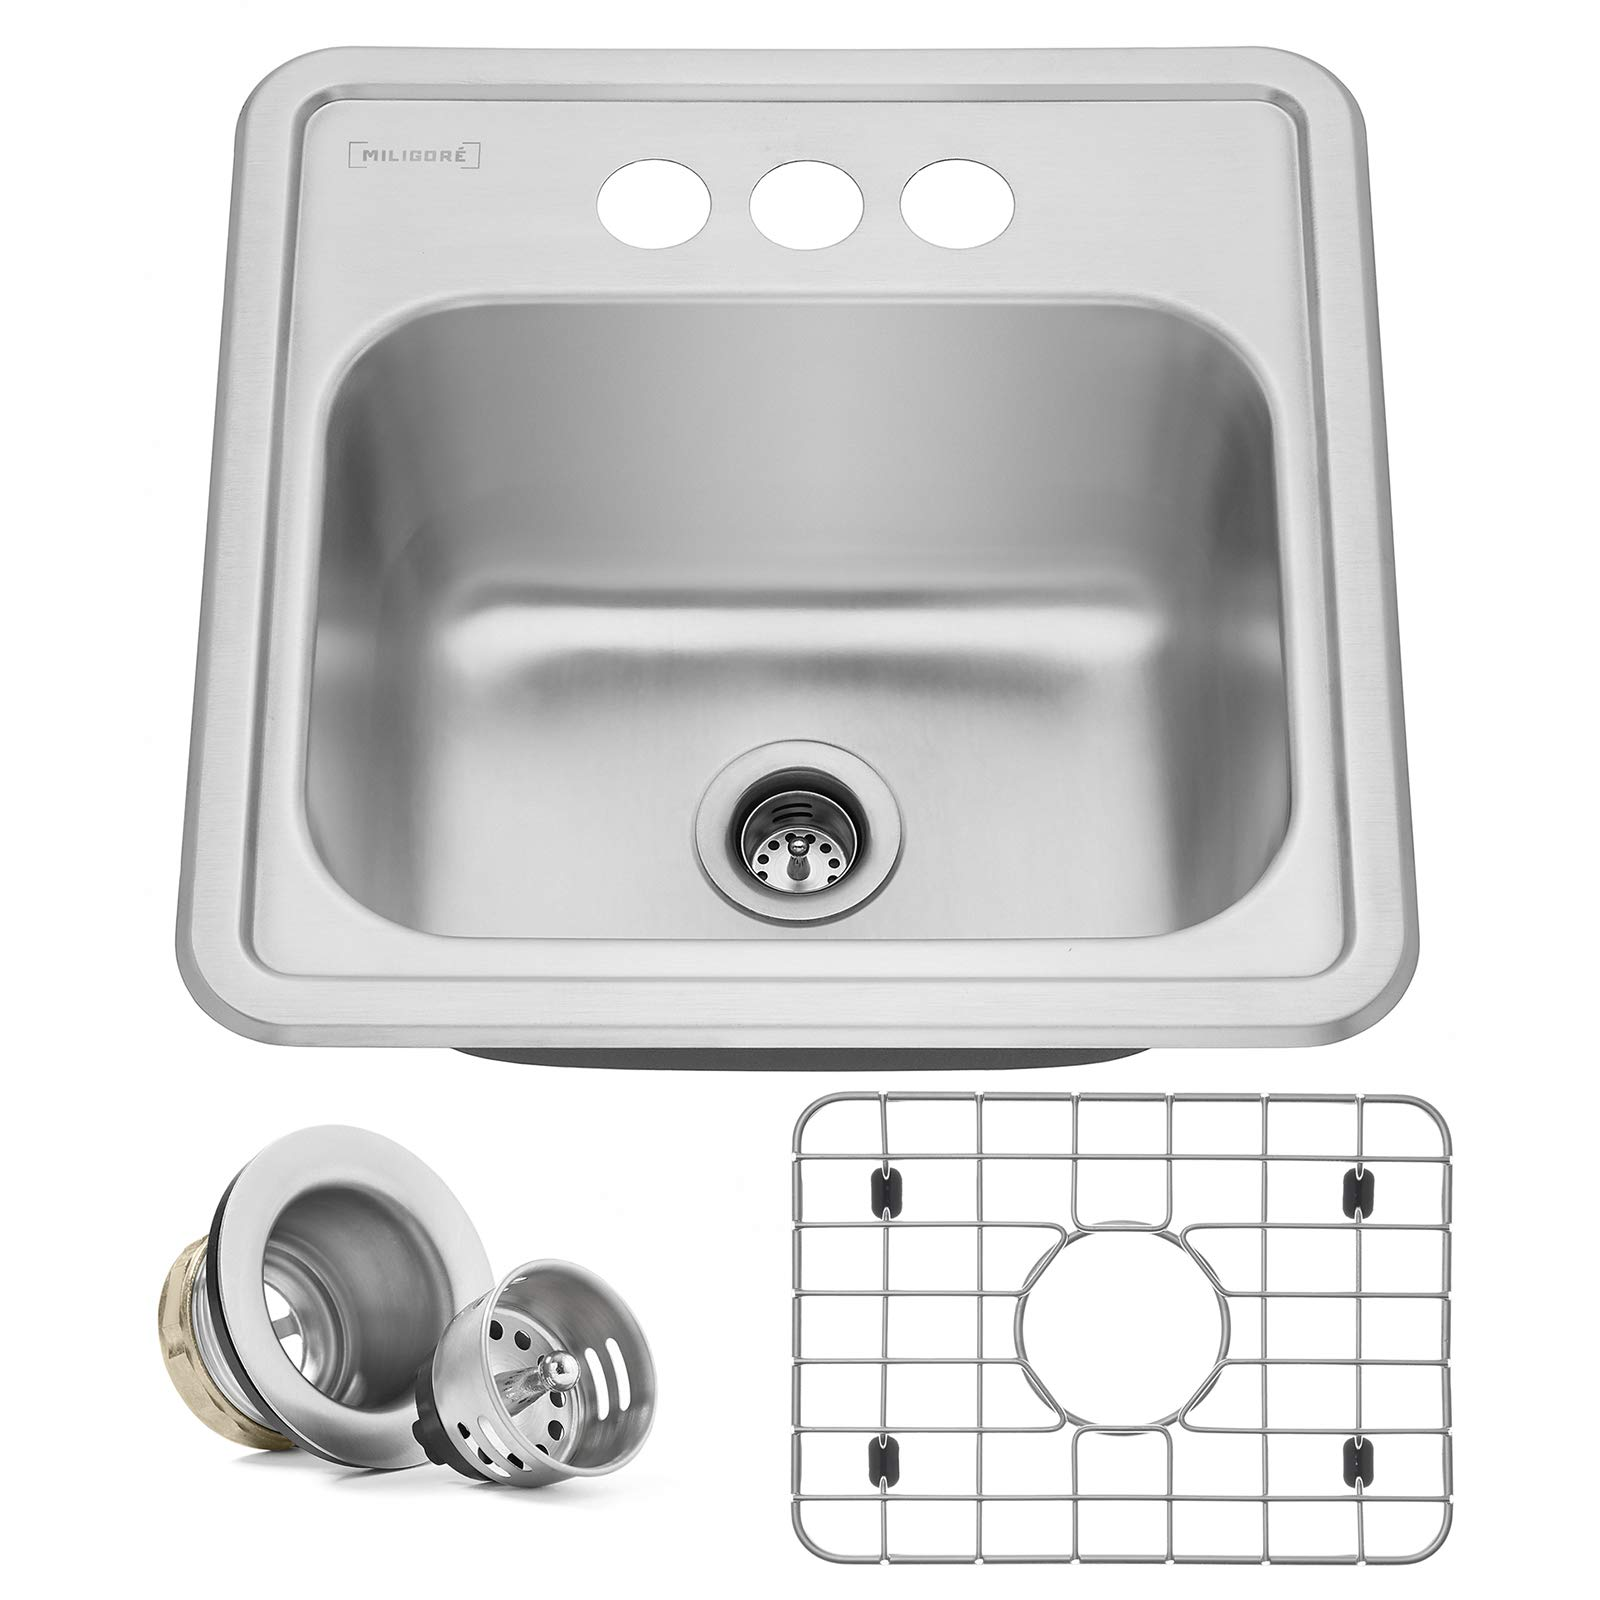 Miligore 15'' x 15'' x 6'' Deep Single Bowl Top-Mount Drop-in 22-Gauge Stainless Steel Bar/Prep/Utility Sink - Includes Drain/Grid